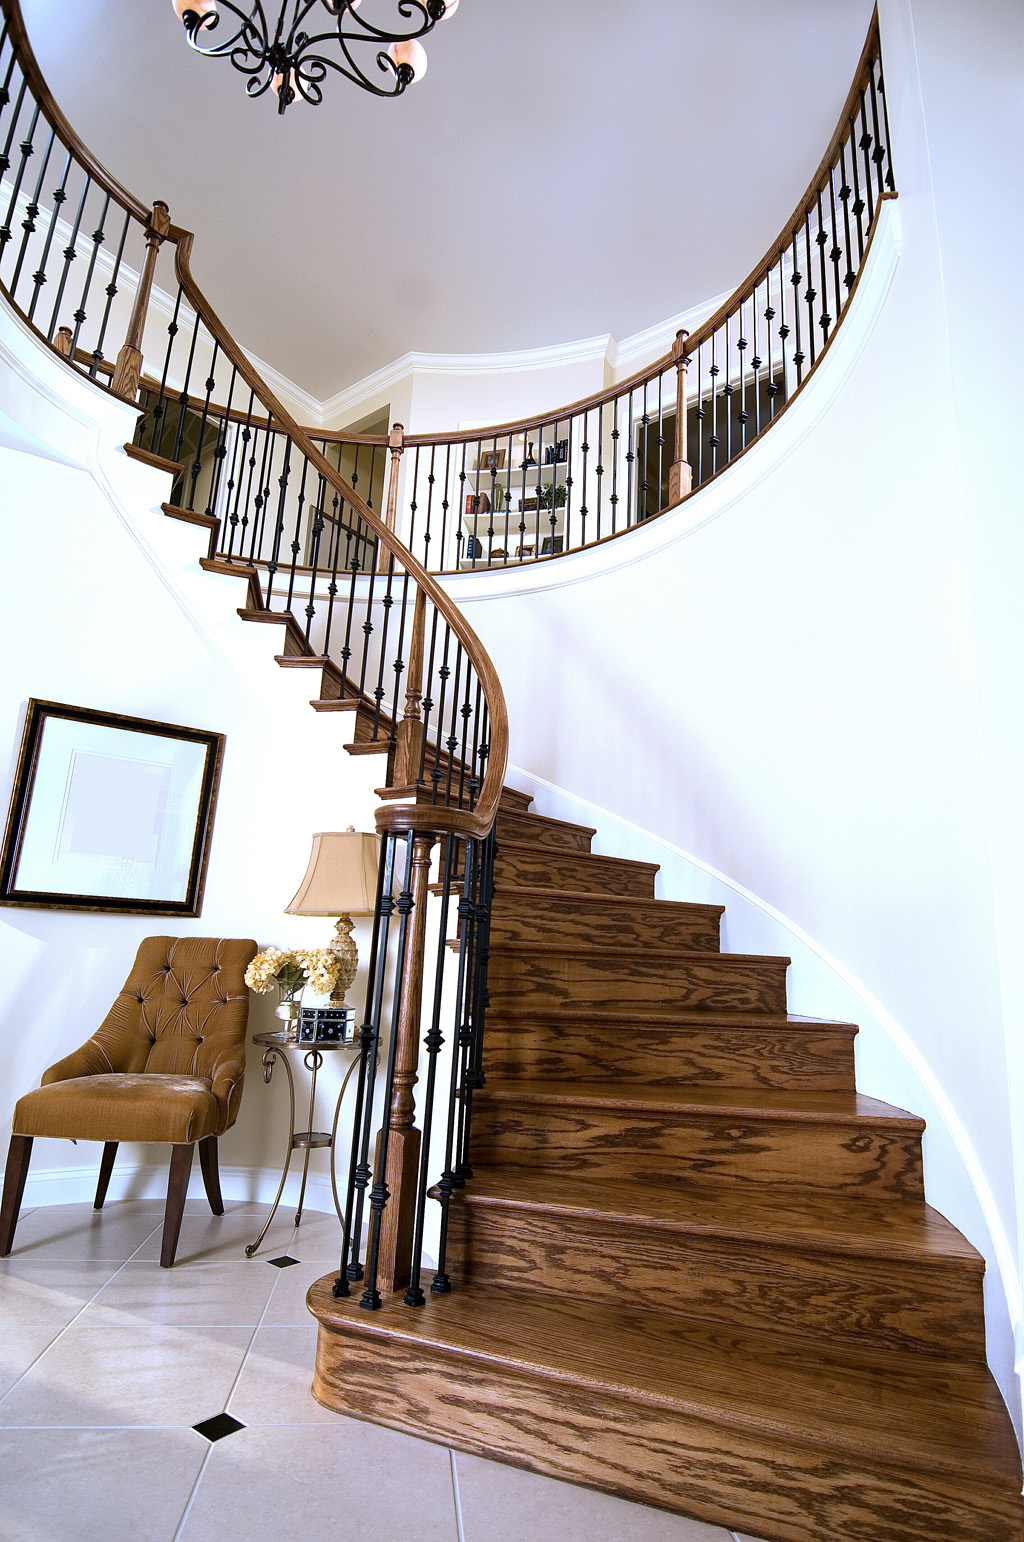 6010 Colonial Bending rail, PLAK01 and PLAK02 Metal balusters are shown on an all-oak curved staircase.